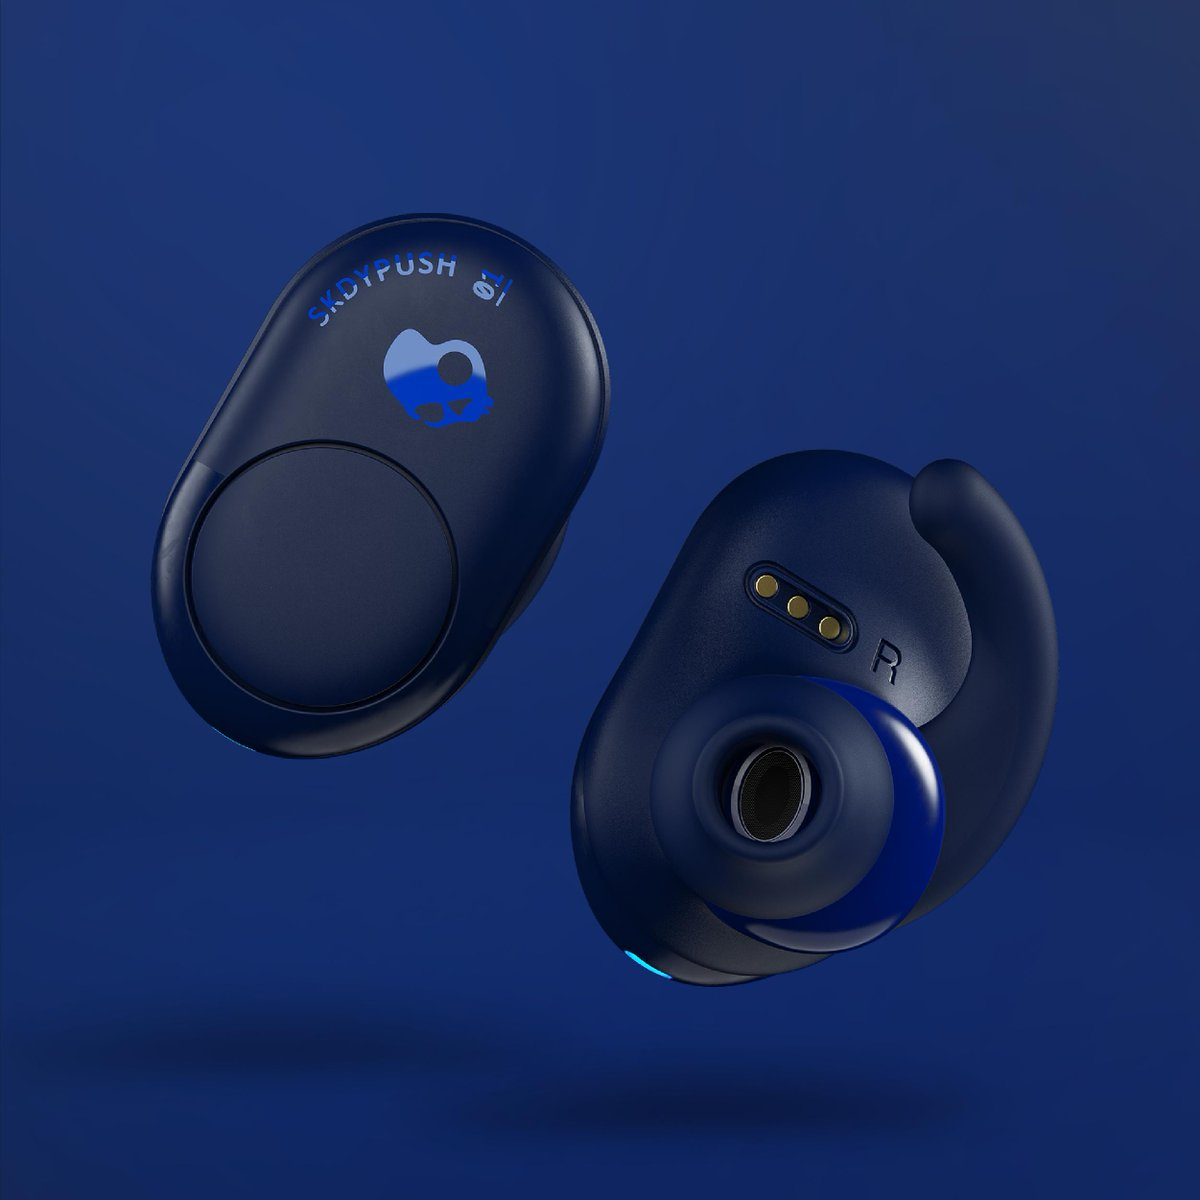 74e4ce149dc We've just released 2 new colors for Push True Wireless, Dark Grey and  Indigo. Don't sleep on these. Get yours now: http://bit.ly/Push-True-Wireless  … ...